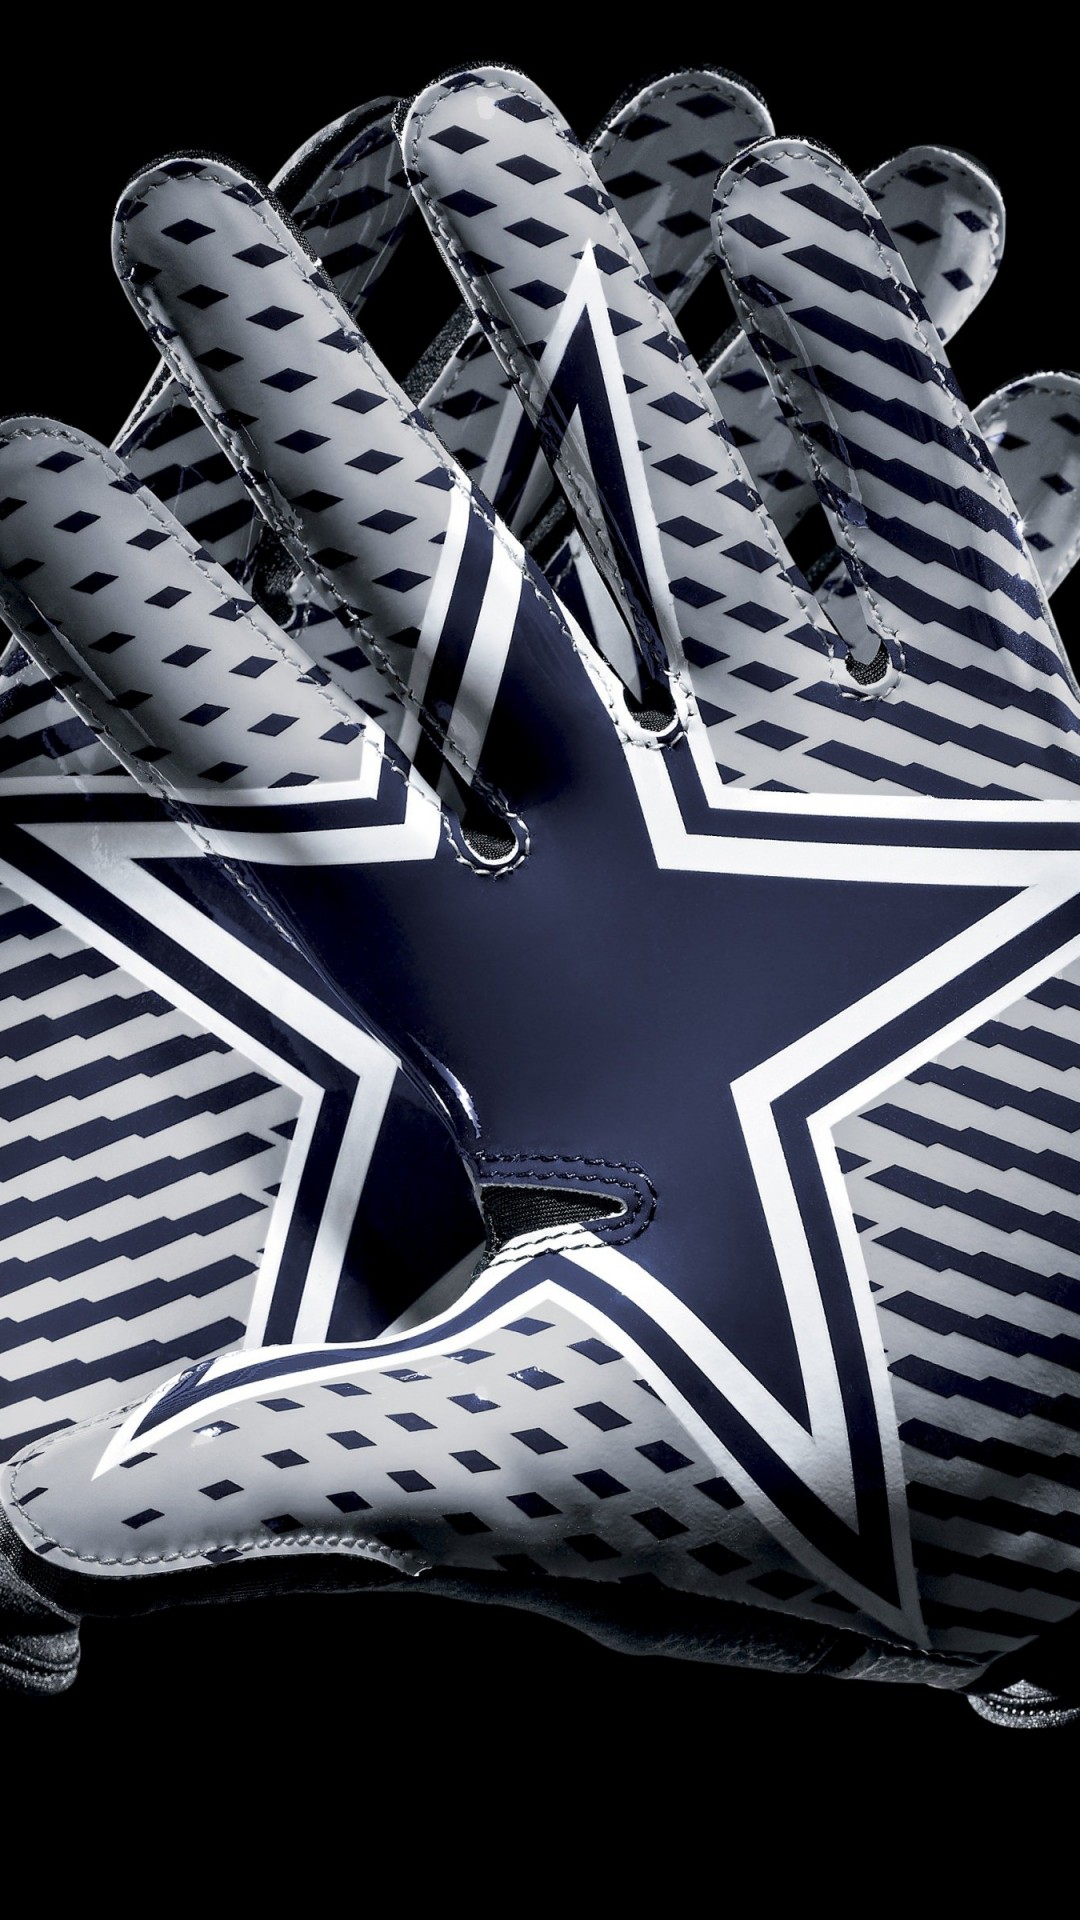 Dallas Cowboys Gloves Wallpaper for SONY Xperia Z3